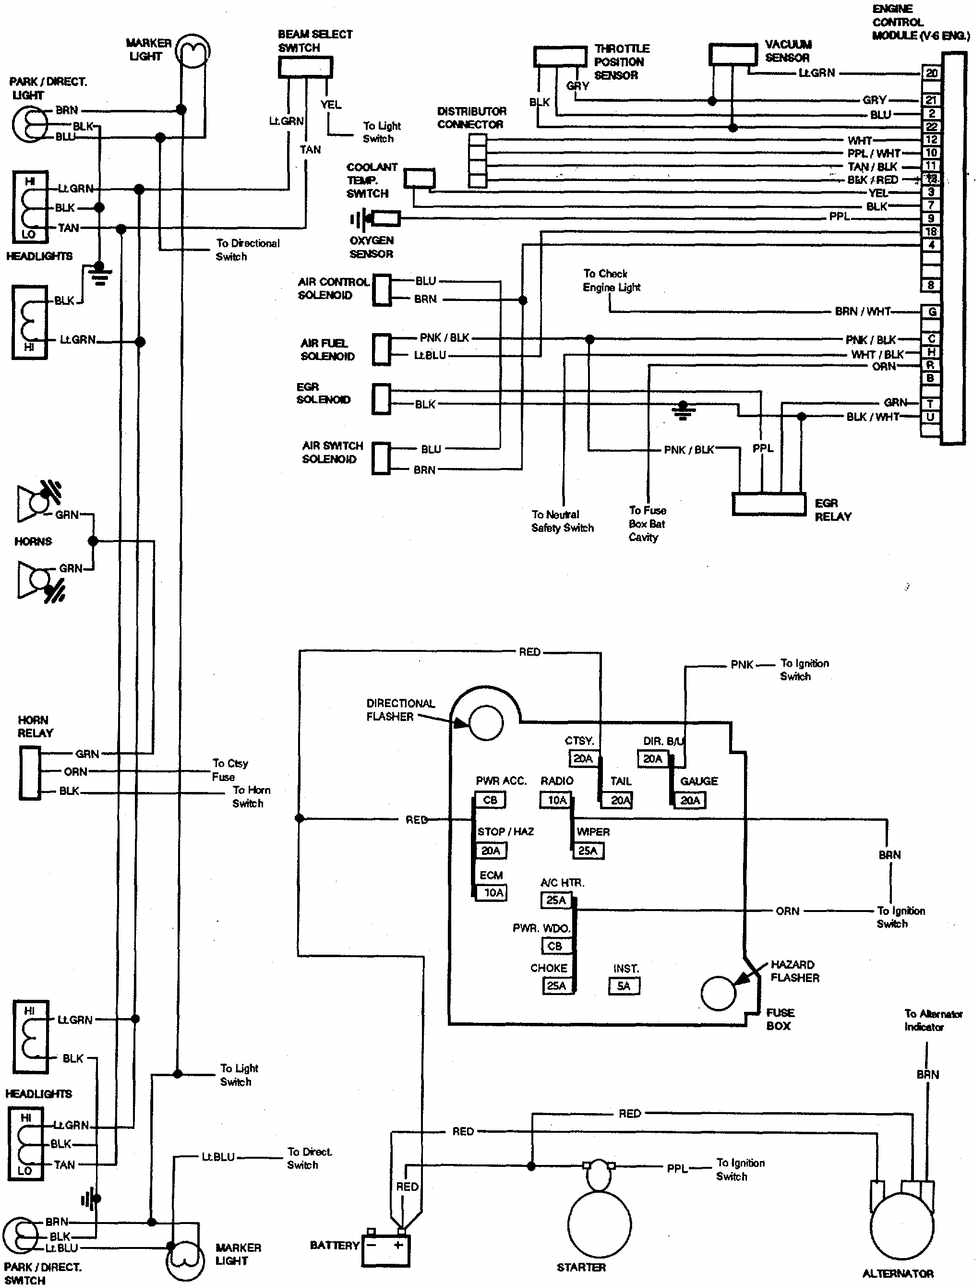 87 Chevy Dual Tank Wiring Diagram on chevy 350 hei firing order diagram